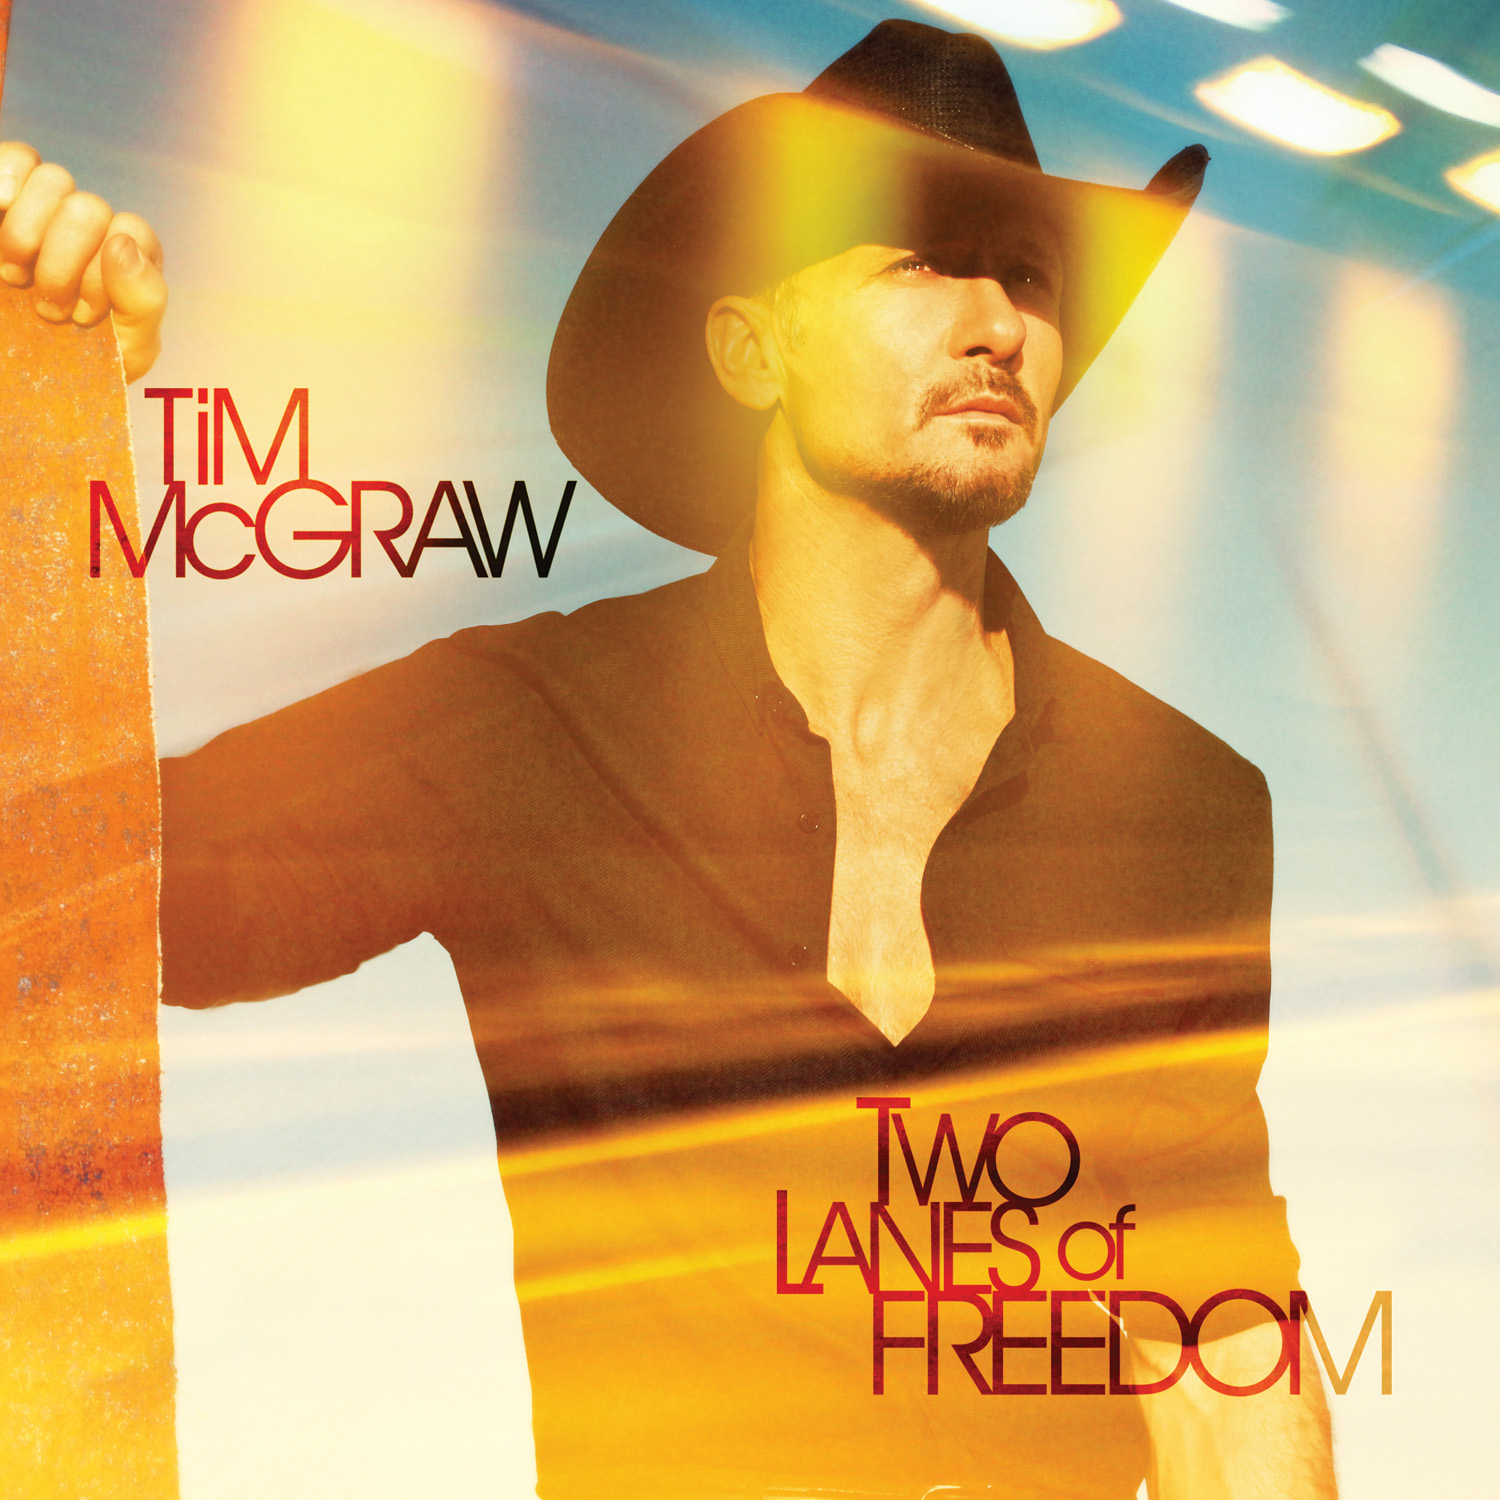 contest enter to win tim mcgraws two lanes of freedom